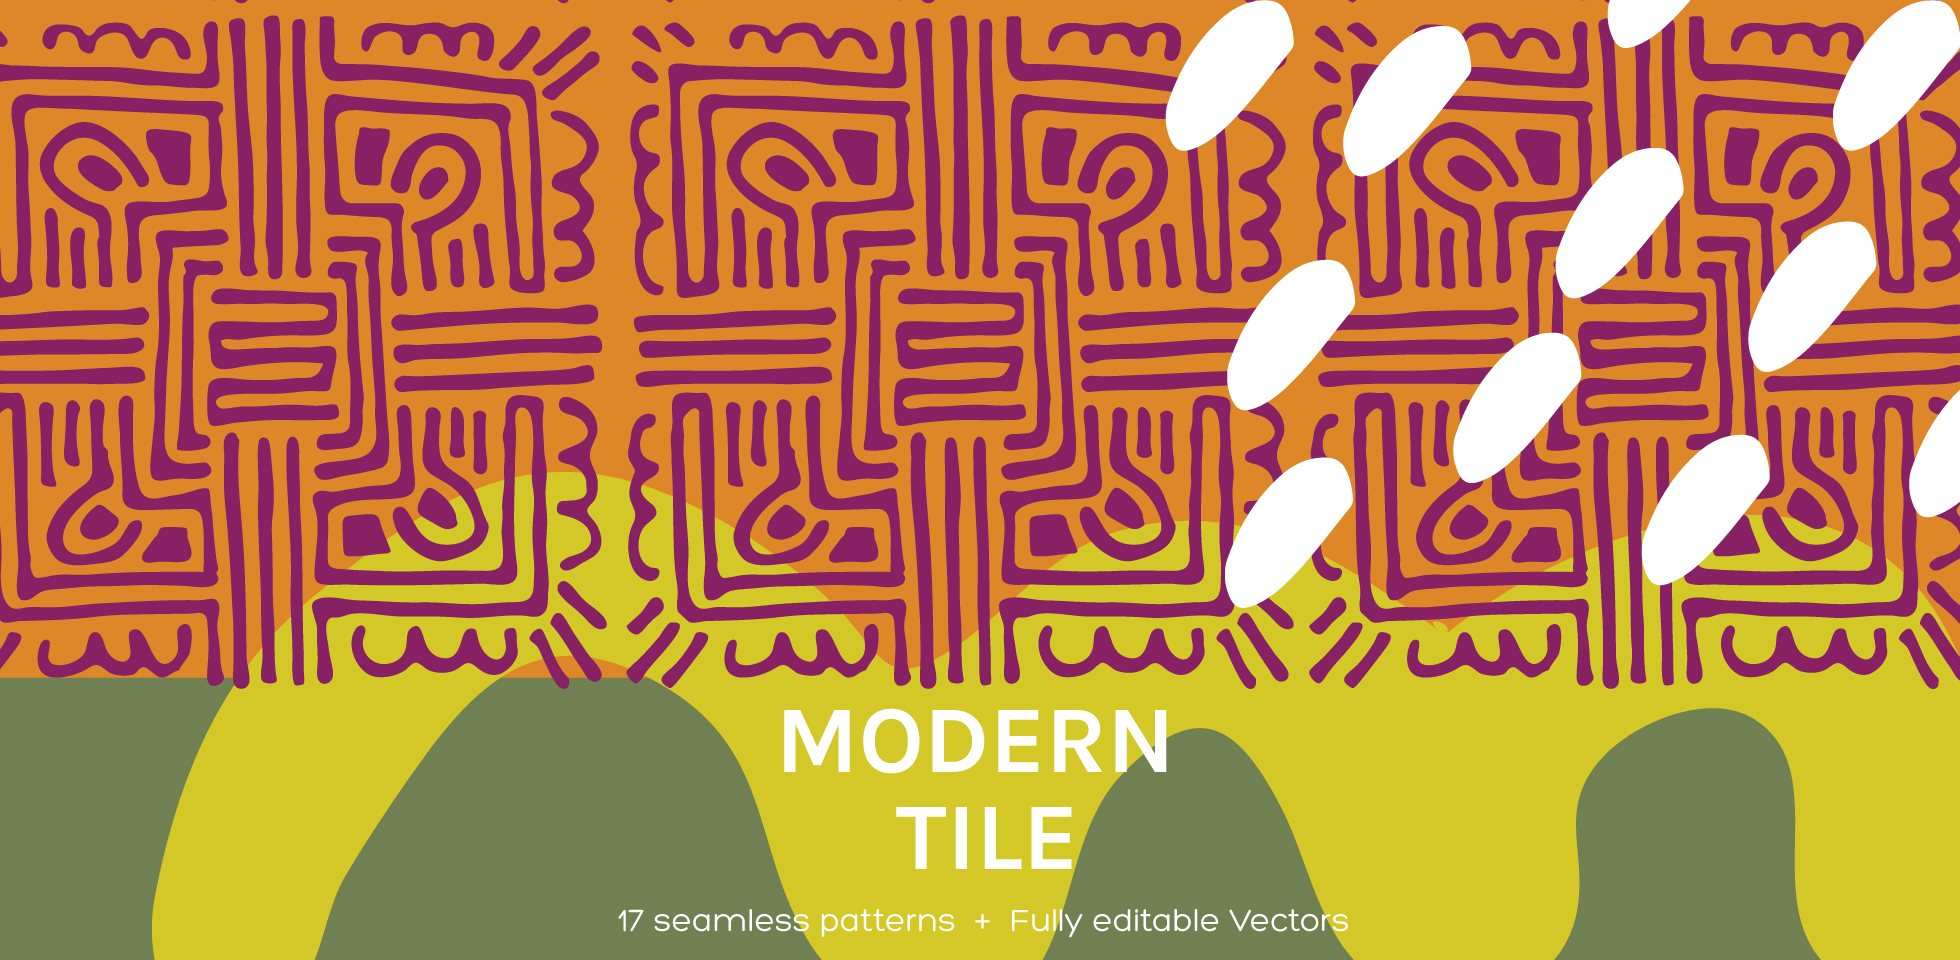 Free Download: Modern Tile | Seamless Patterns